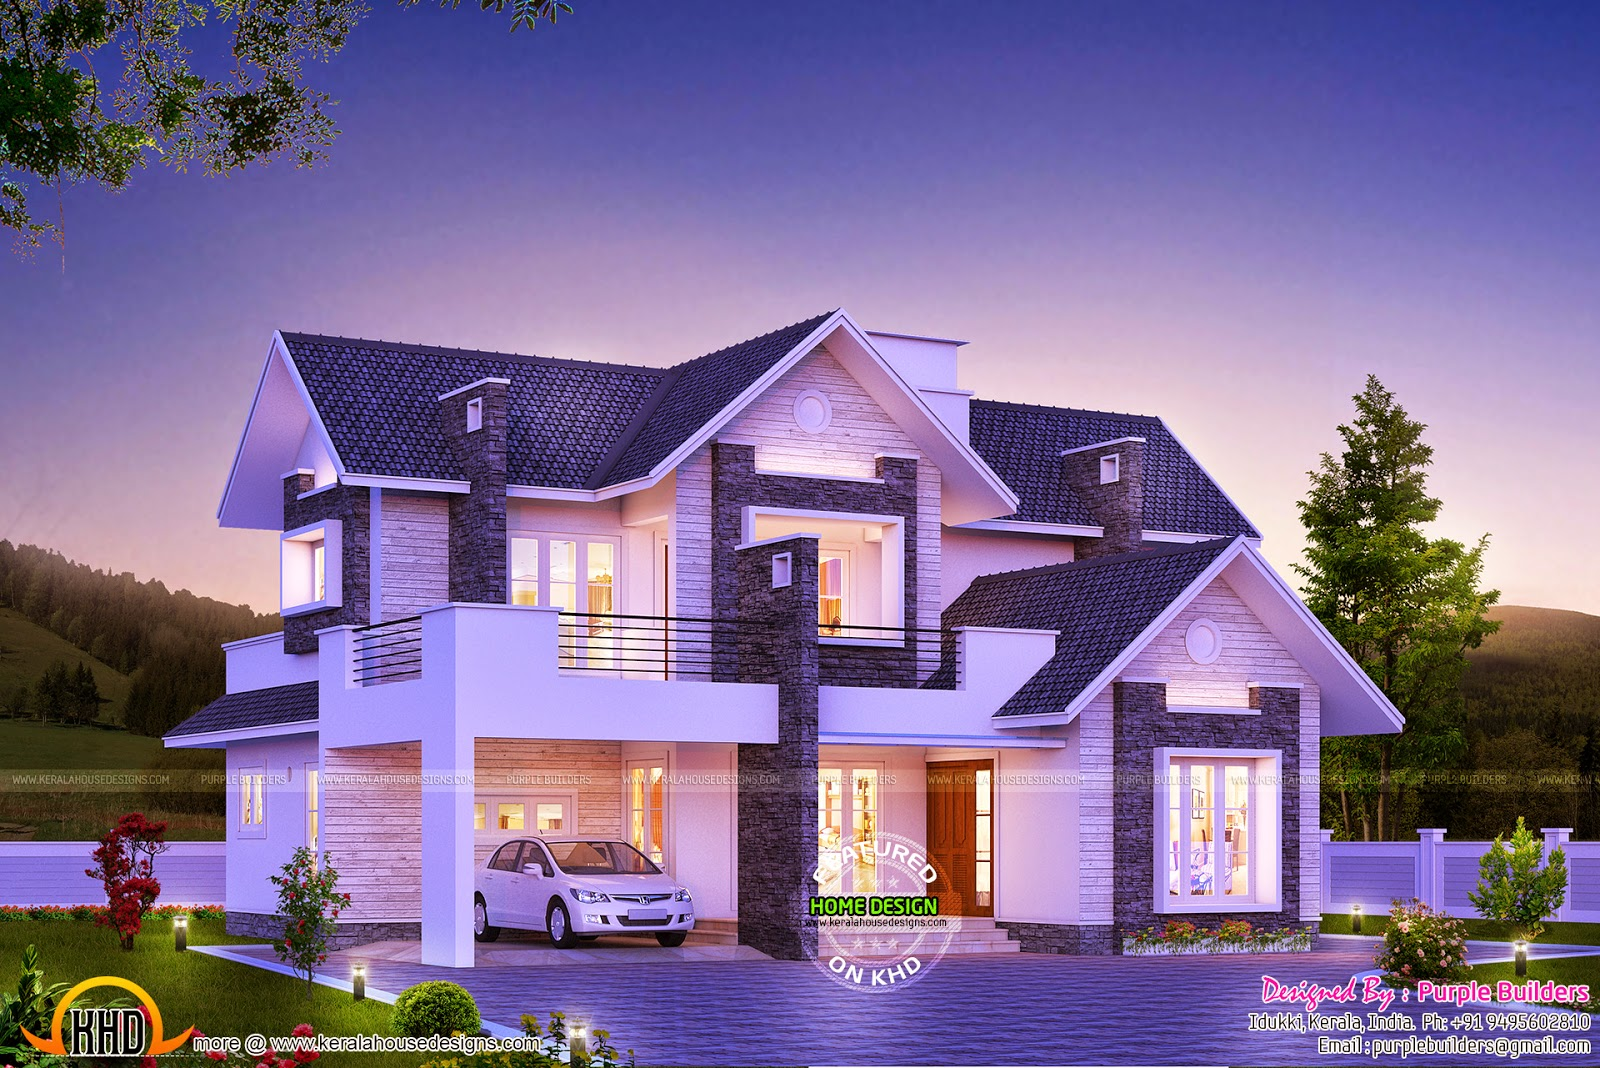 house plans in kerala style with photos with Super Dream Home on 10287 furthermore Designs Houses Outlook also Nautilus Houseboats likewise Plan And Elevation likewise Simple Elevation House Plan In Below.